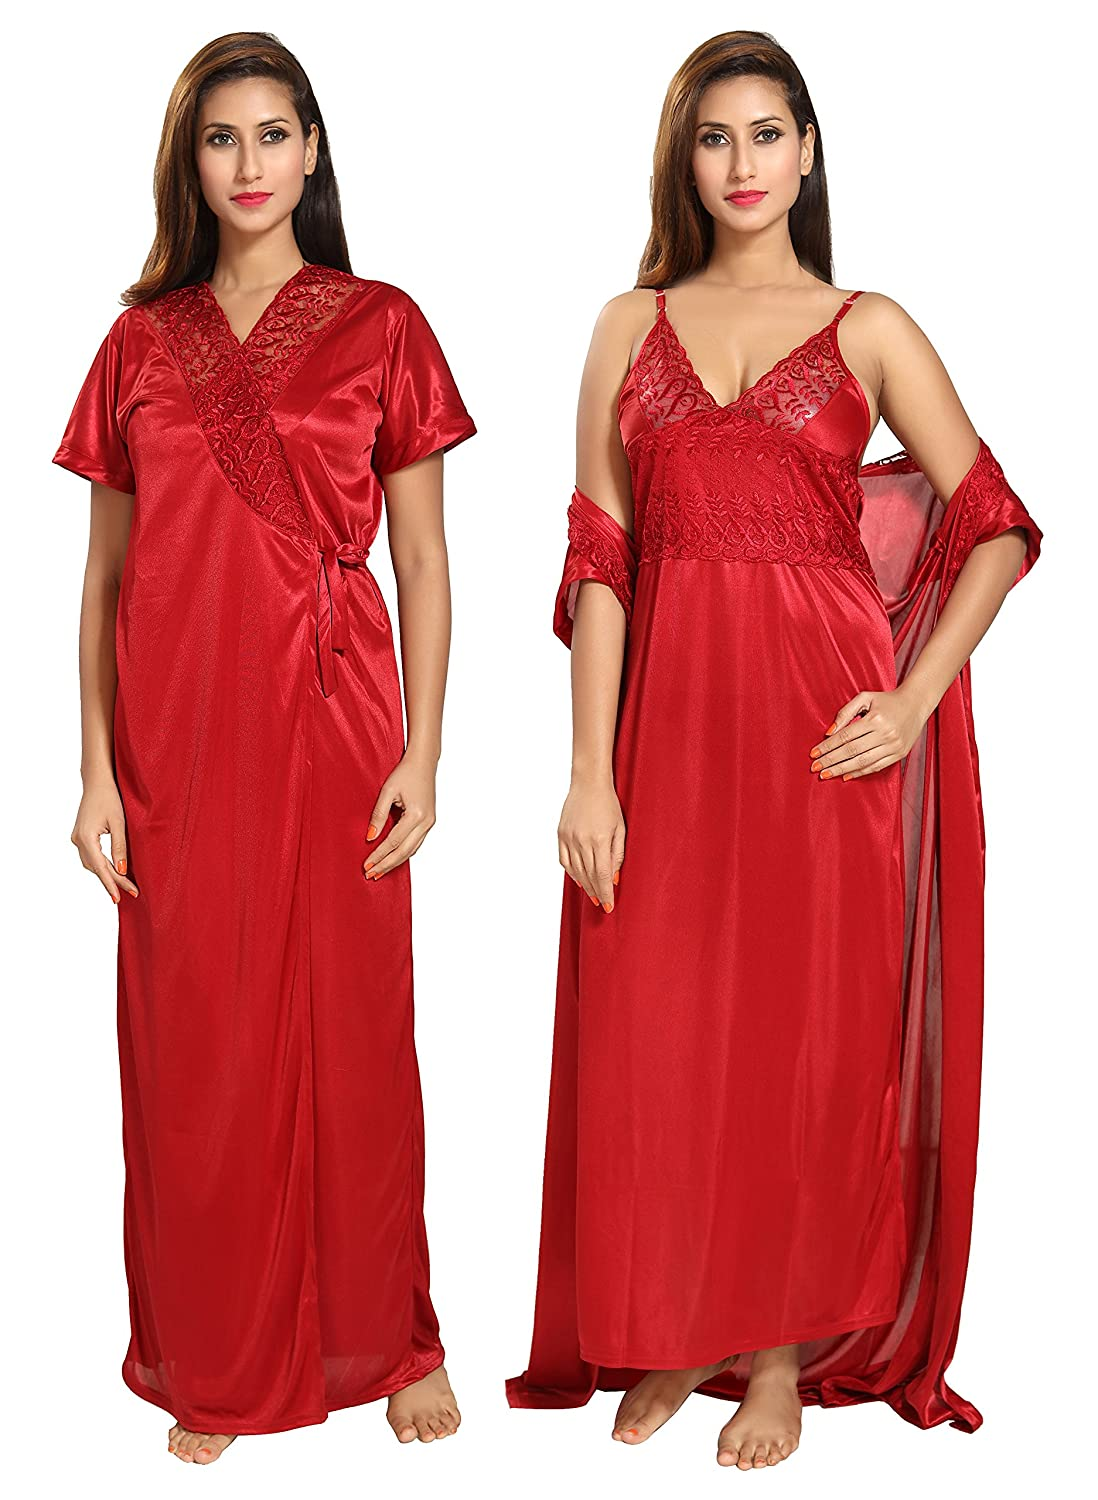 347e799045 Noty Women s Satin Nighty with Robe(51153 Maroon  Free Size) - Pack of 2   Amazon.in  Clothing   Accessories